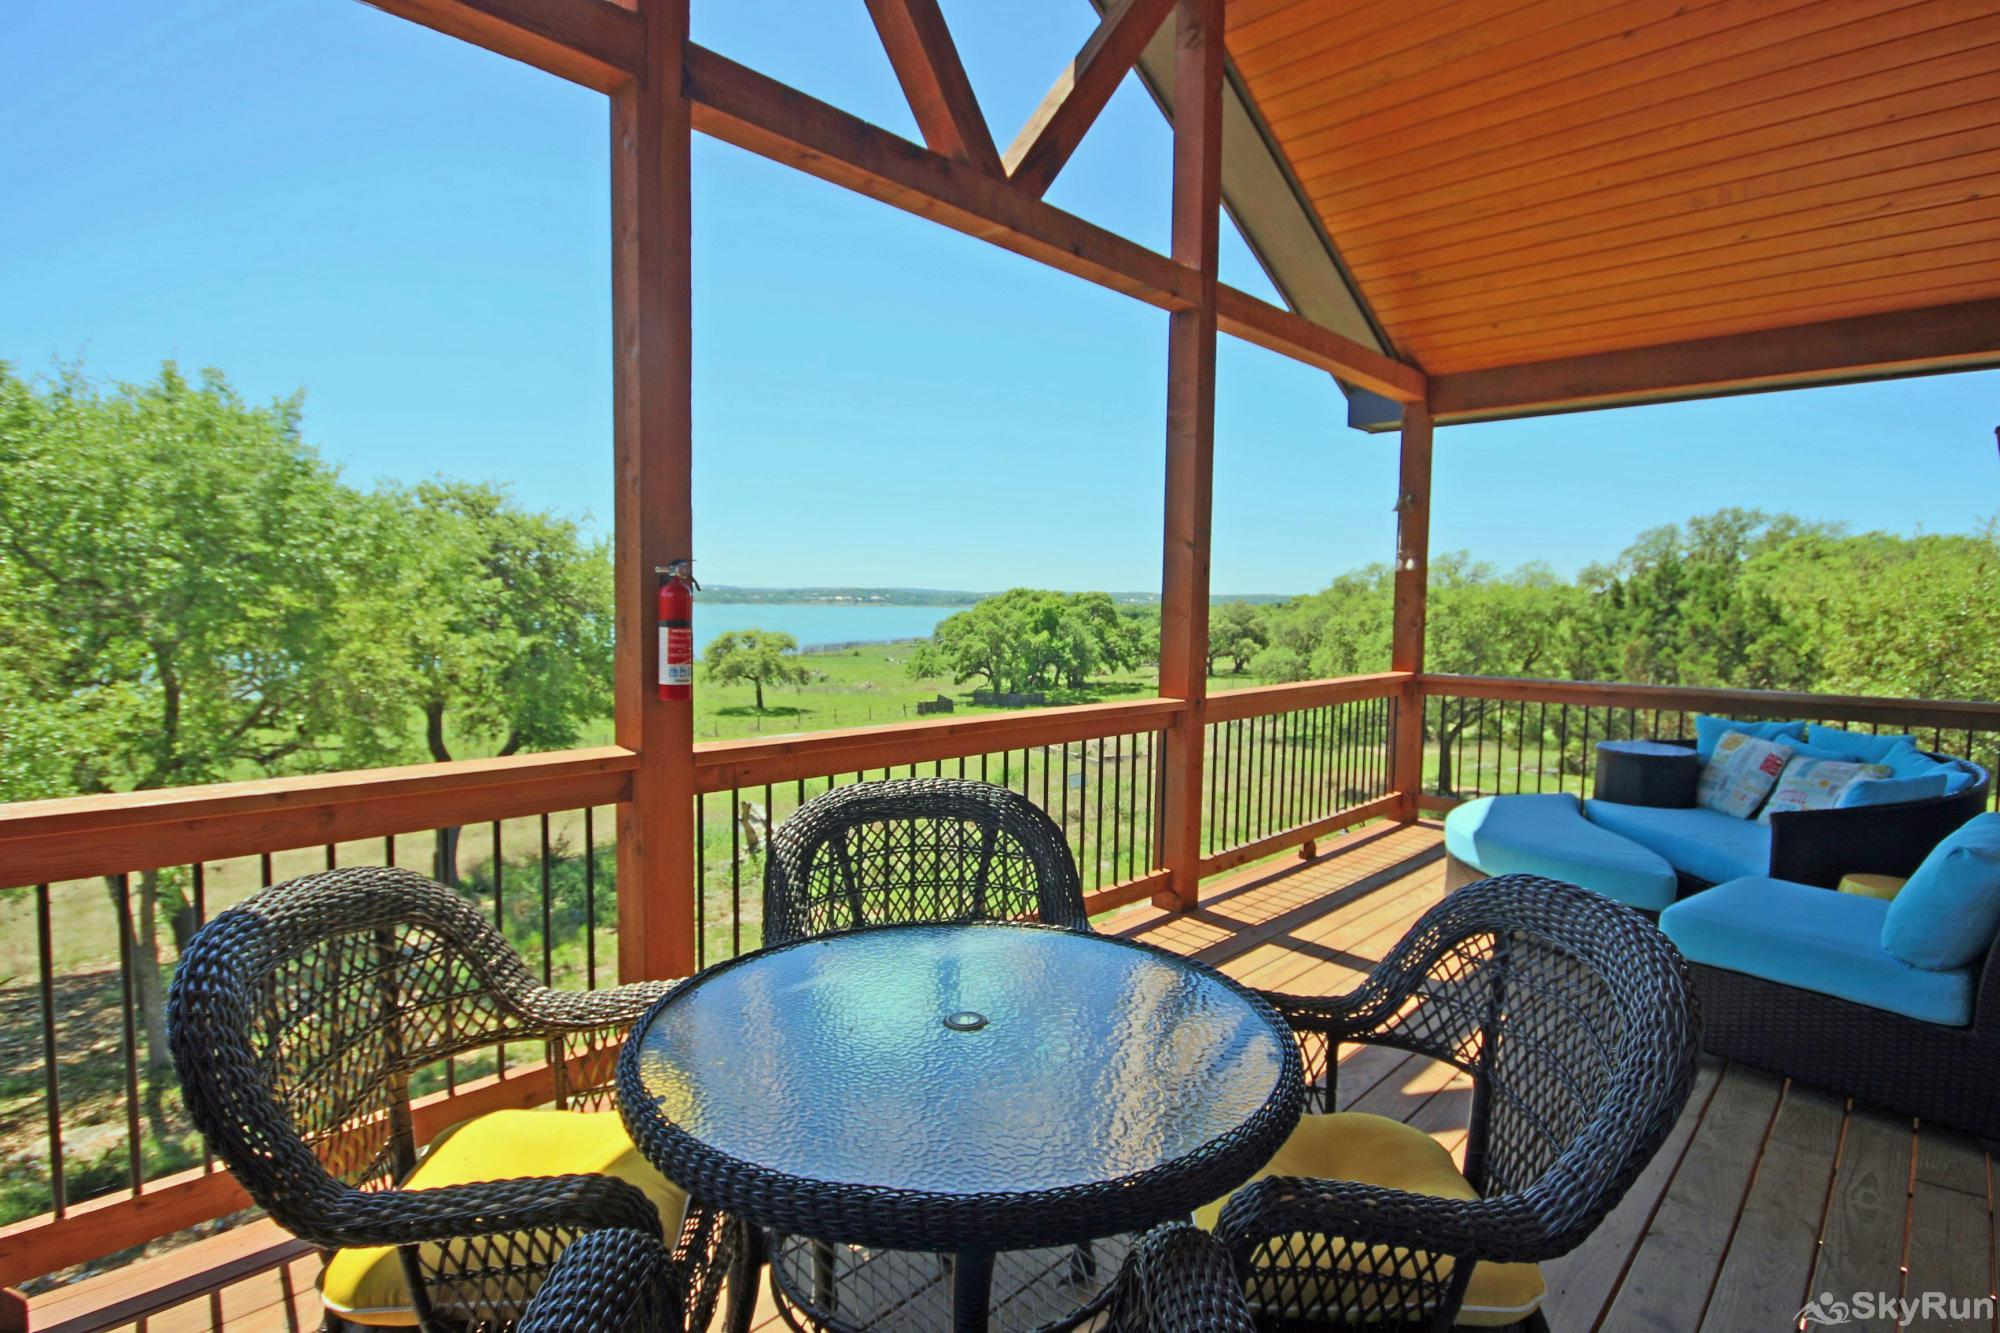 WINE DOWN LAKE ESCAPE Raised Deck with Lakeview and Comfortable Funiture